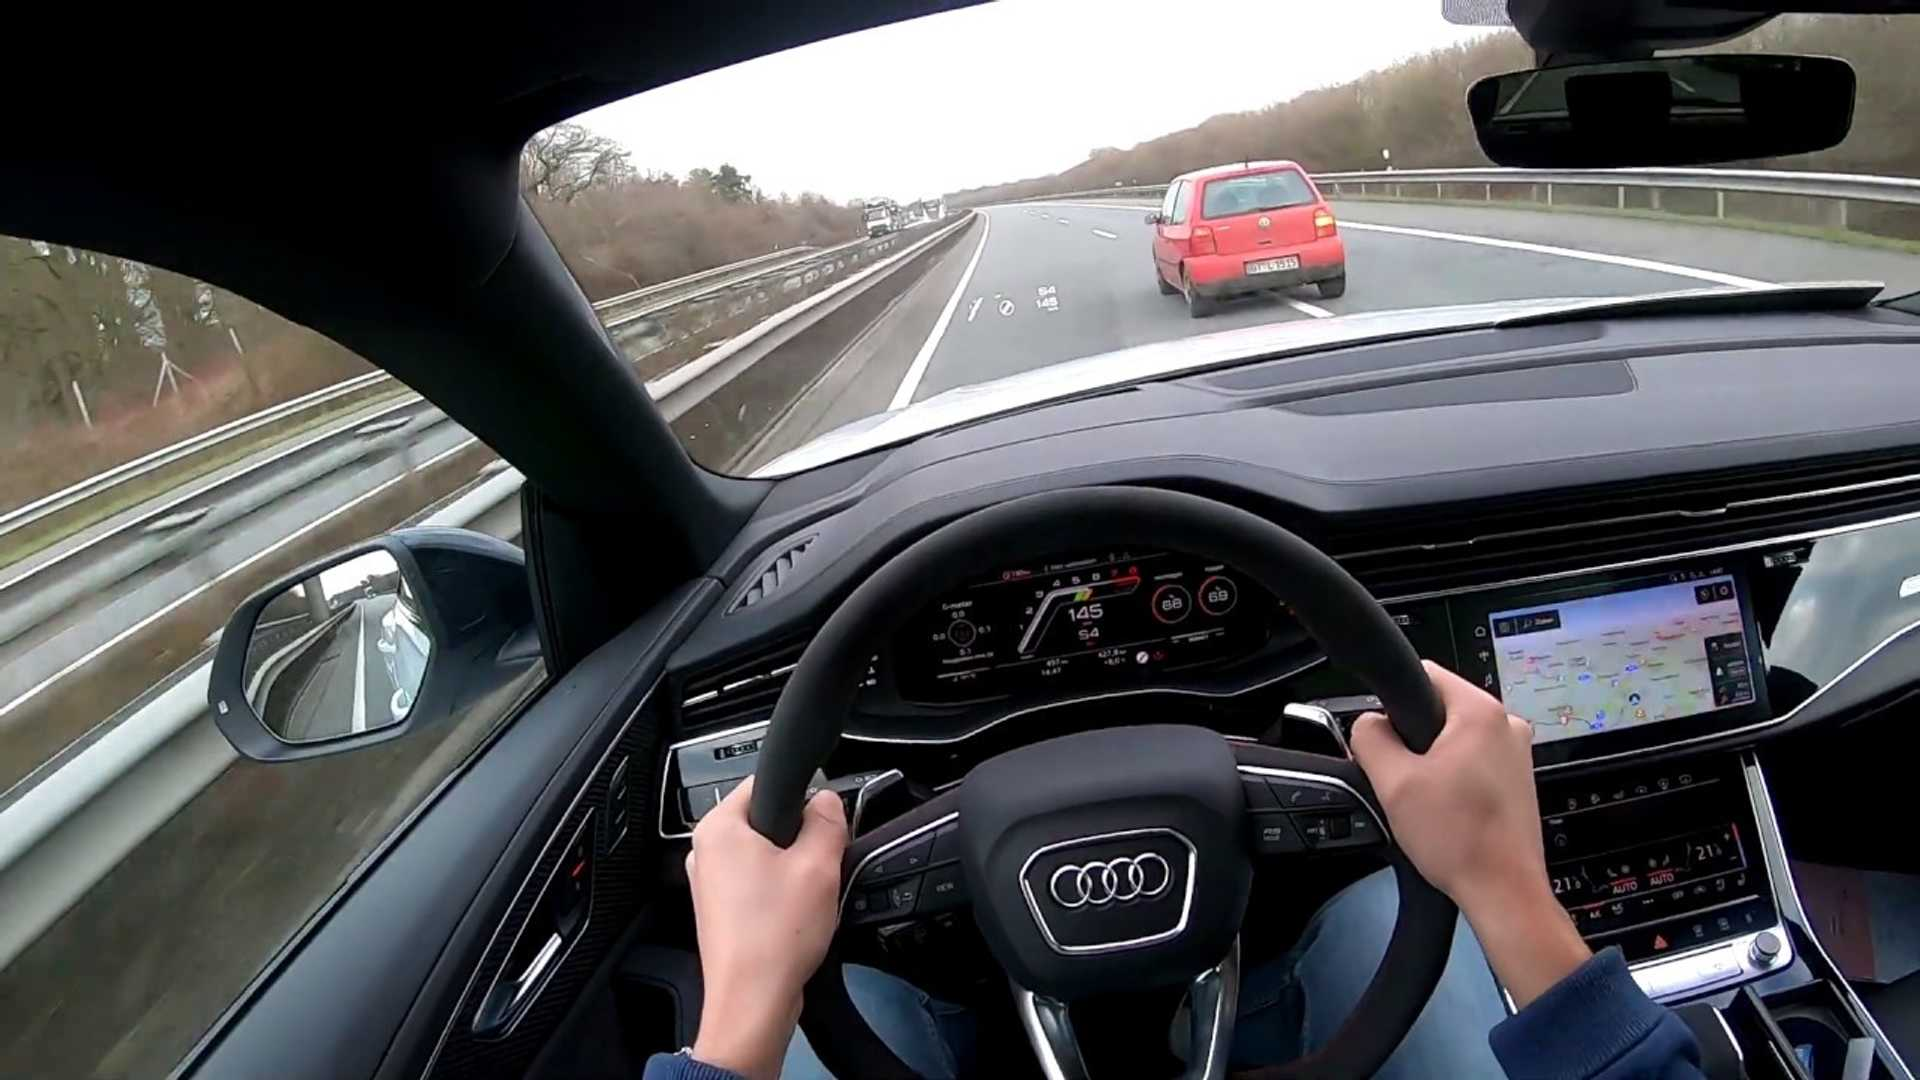 Audi RS Q8 effortlessly hits 188 mph on the Autobahn